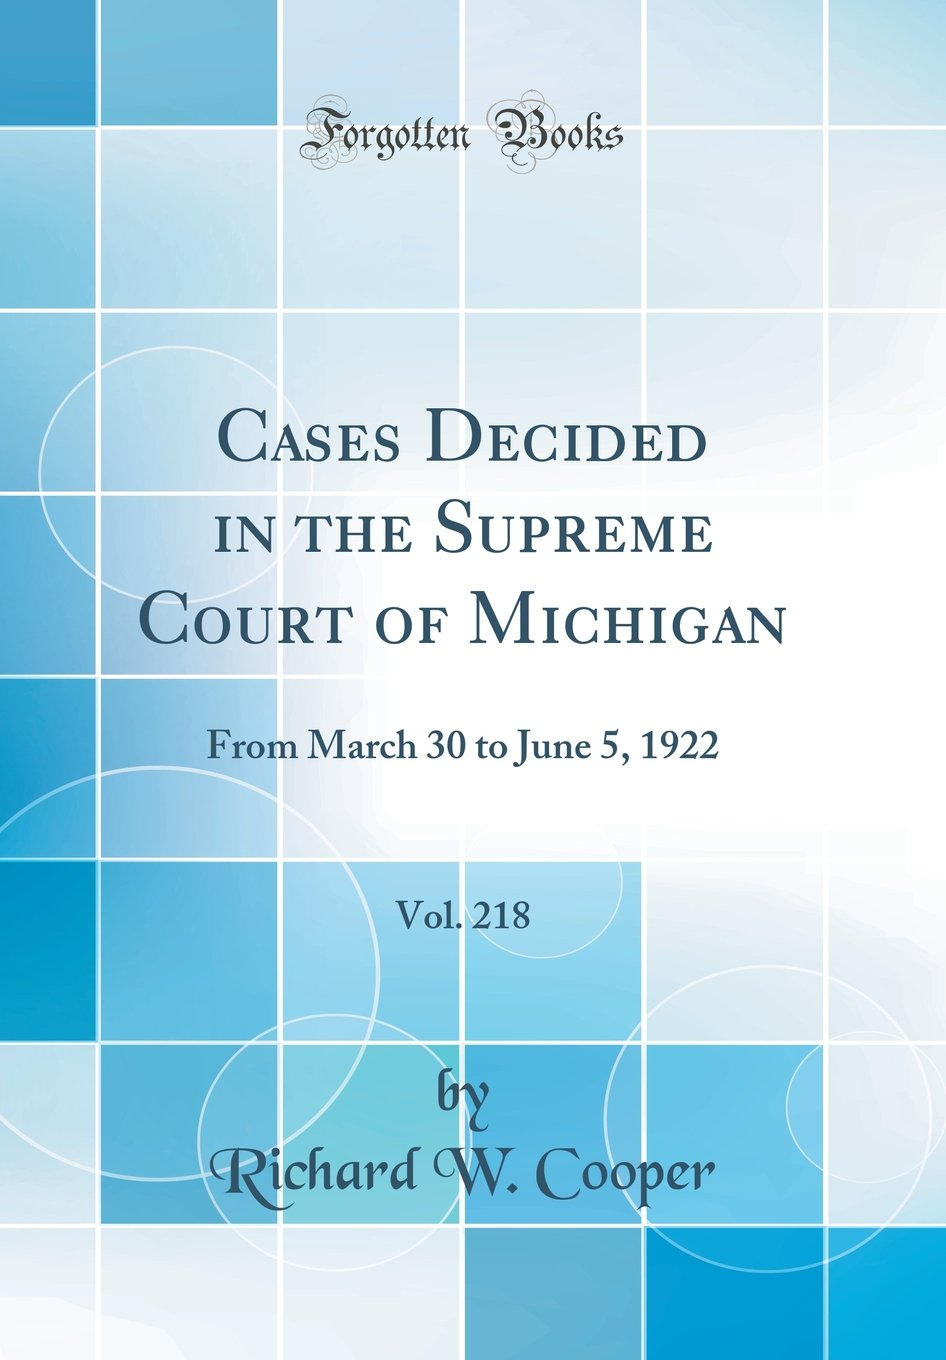 Download Cases Decided in the Supreme Court of Michigan, Vol. 218: From March 30 to June 5, 1922 (Classic Reprint) pdf